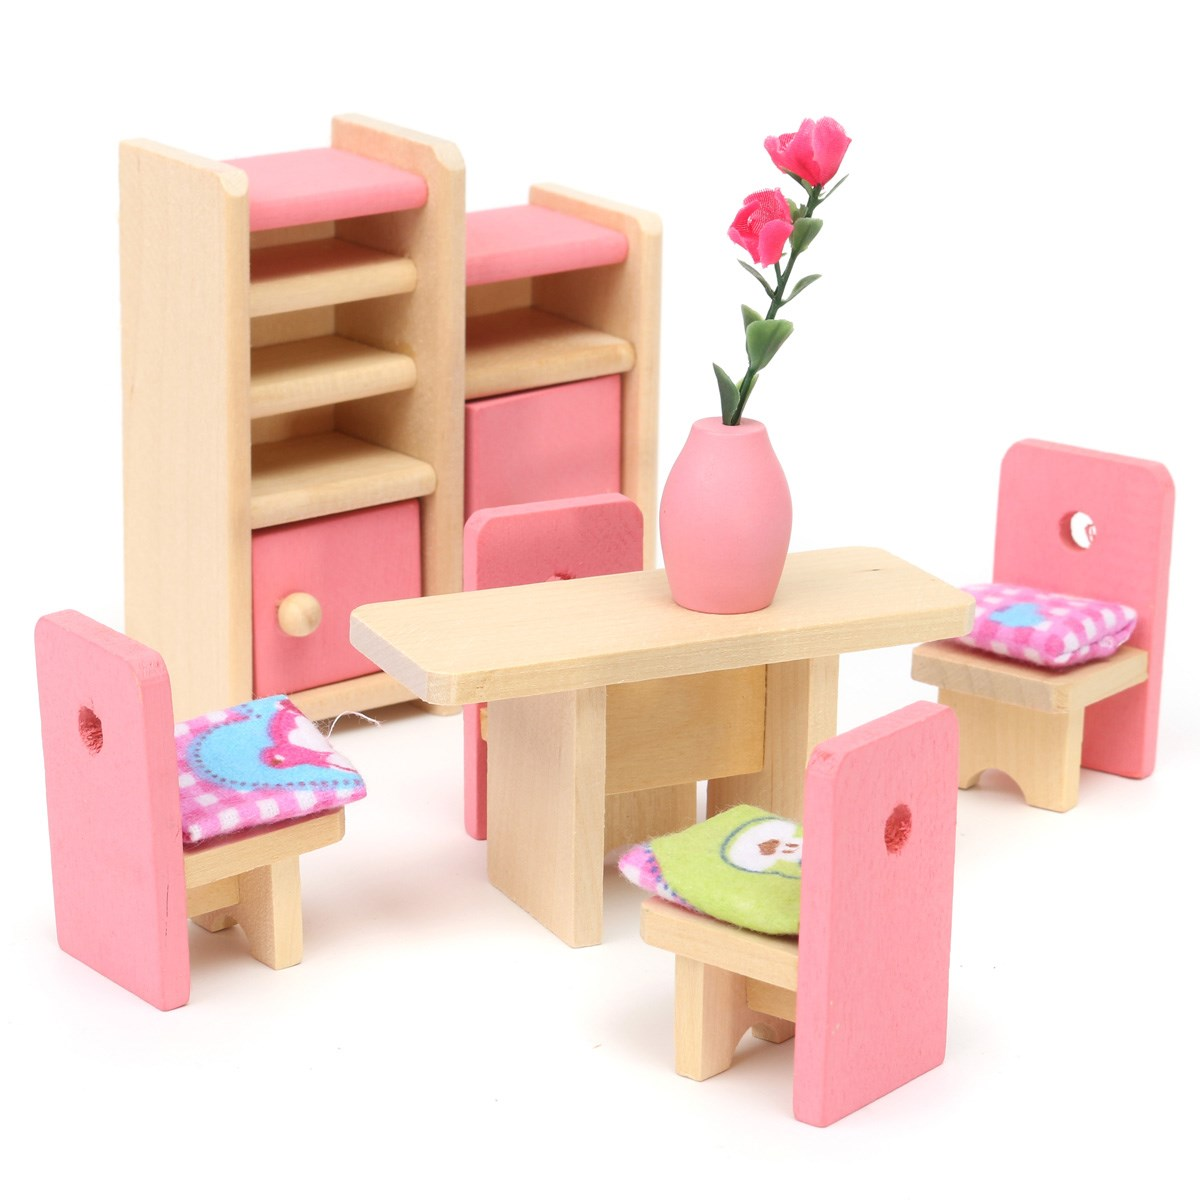 Wooden Delicate Dollhouse Furniture Toys Miniature For Kids Children  Pretend Play 6 Room Set/4 Dolls Toys In Furniture Toys From Toys U0026 Hobbies  On ...